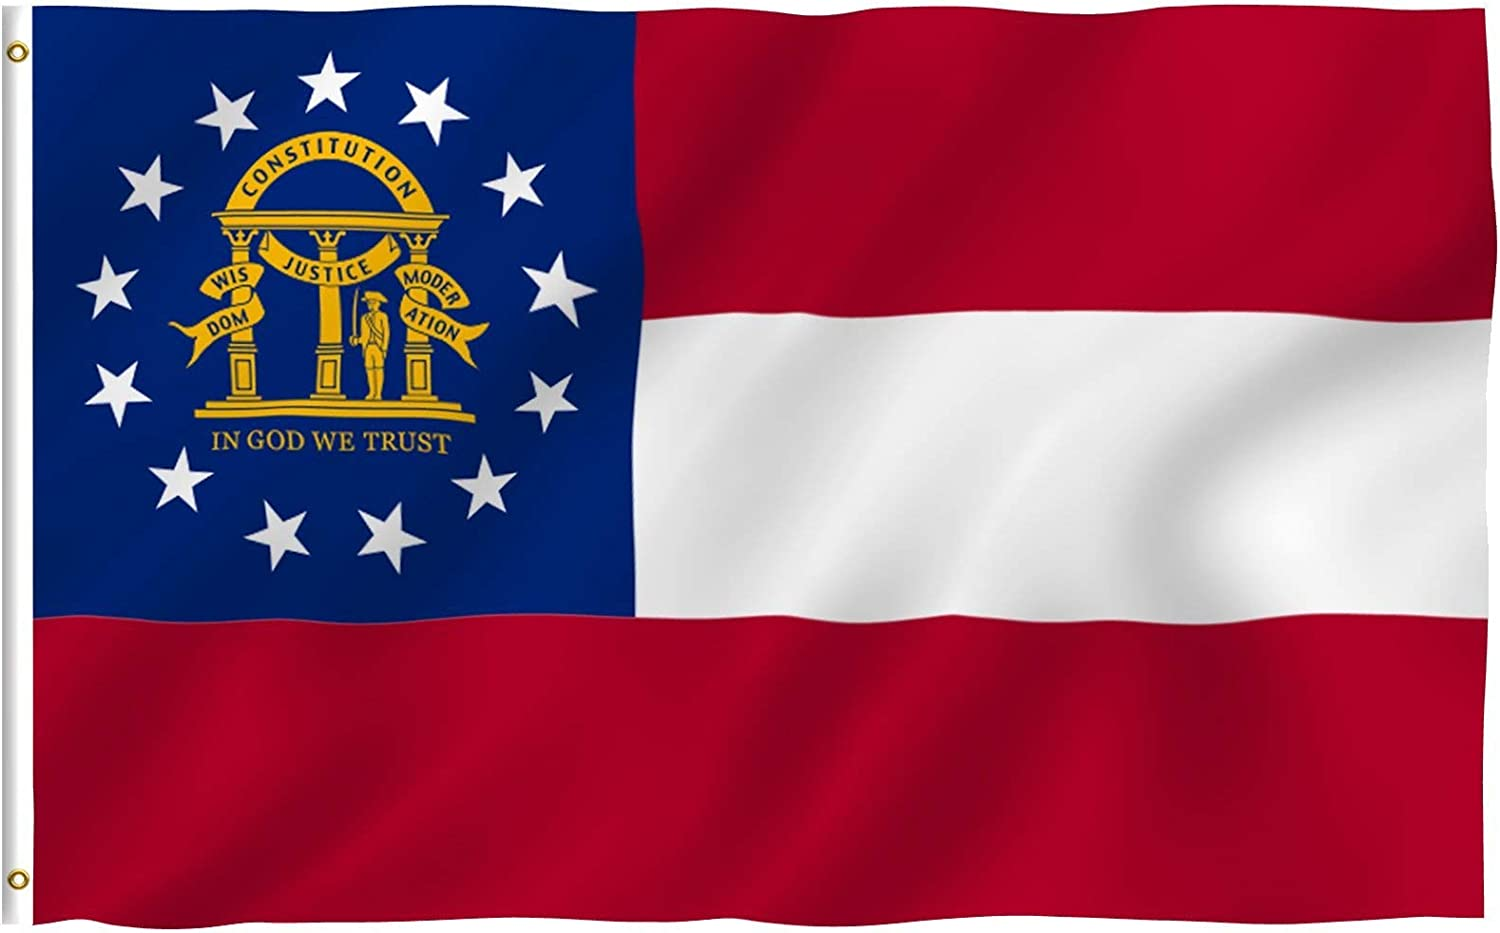 Amazon.com : Anley Fly Breeze 3x5 Foot Georgia State Polyester Flag - Vivid  Color and Fade Proof - Canvas Header and Double Stitched - State of Georgia  GA Flags with Brass Grommets